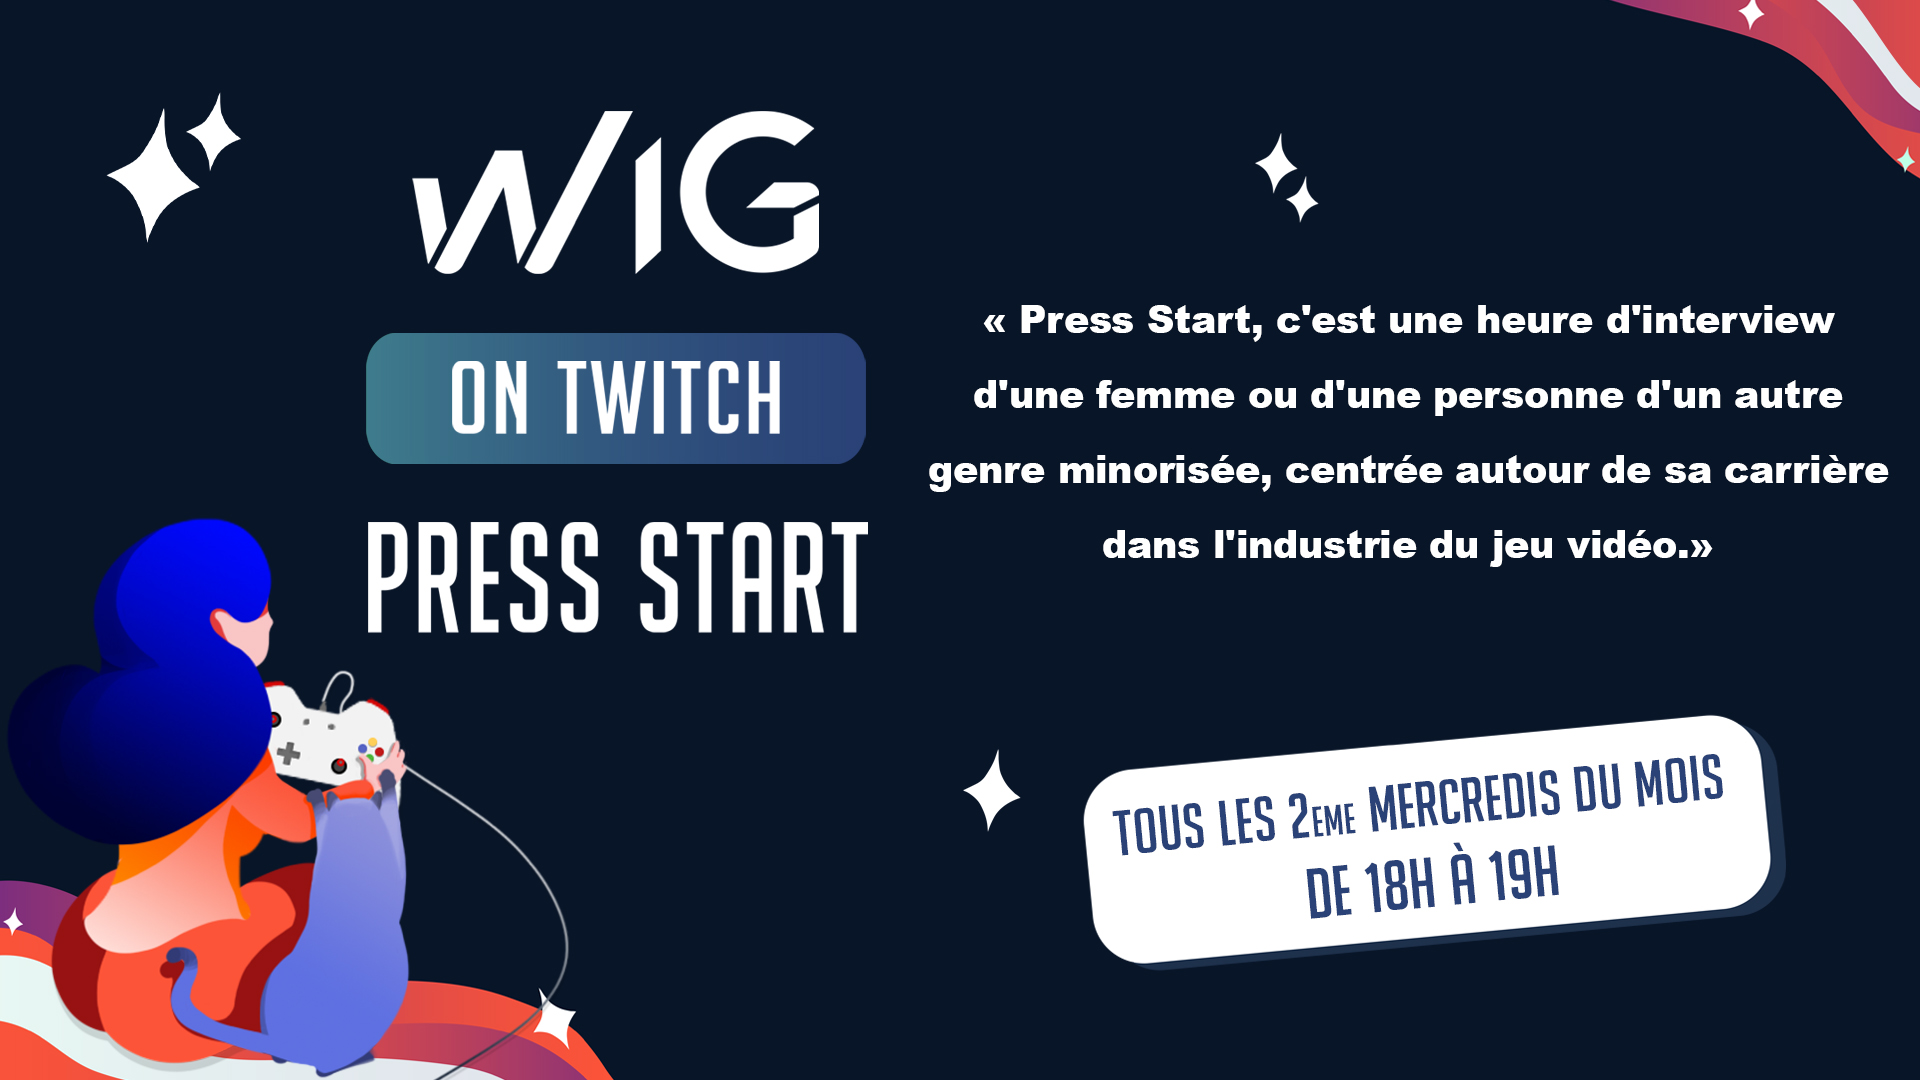 Visuel de communication pour l'émission Press Start de Women In GAme sur Twitch